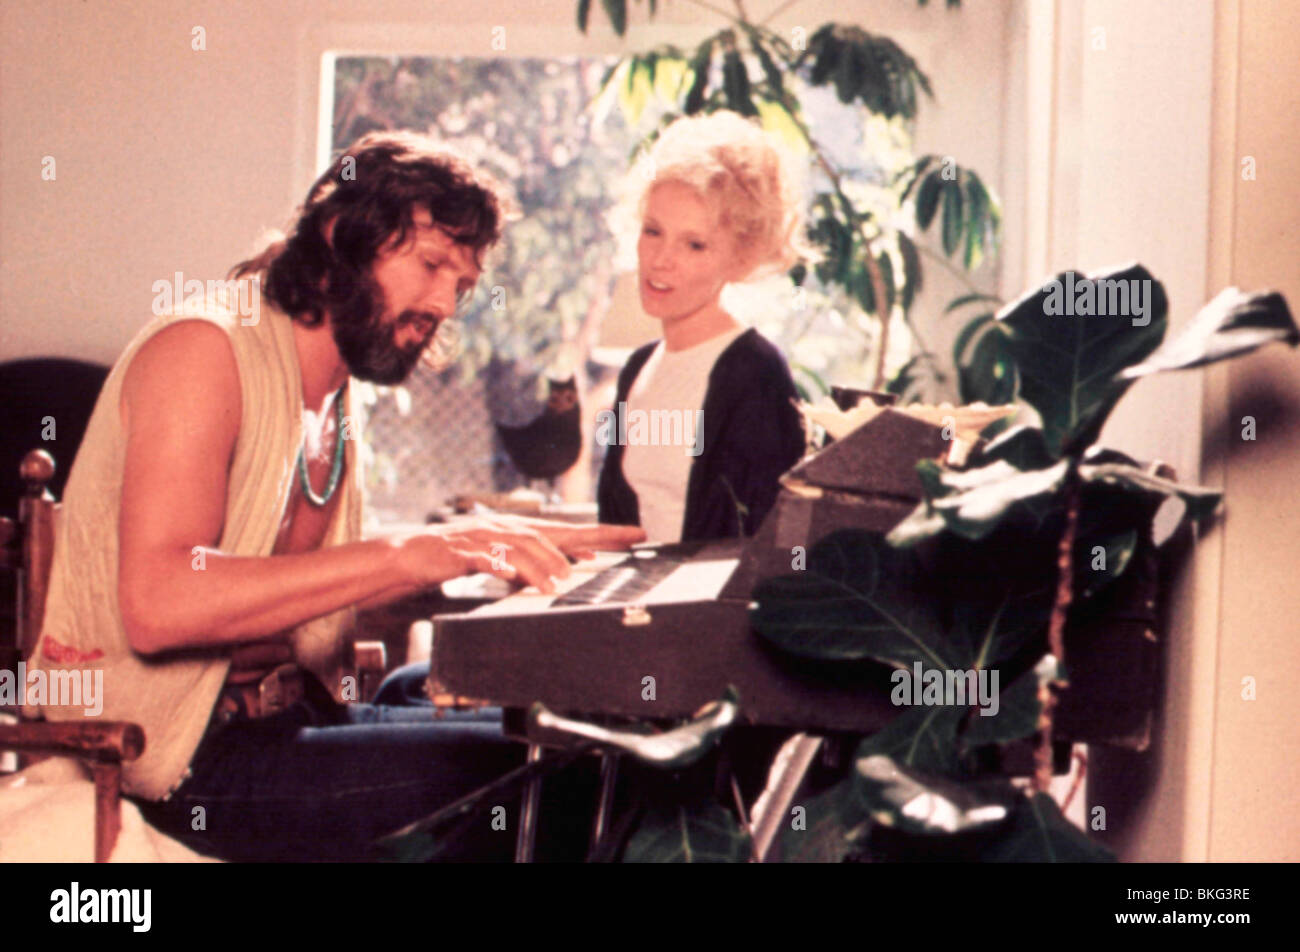 BLUME IN LOVE (1973) KRIS KRISTOFFERSON, SUSAN ANSPACH BLLV 002 - Stock Image